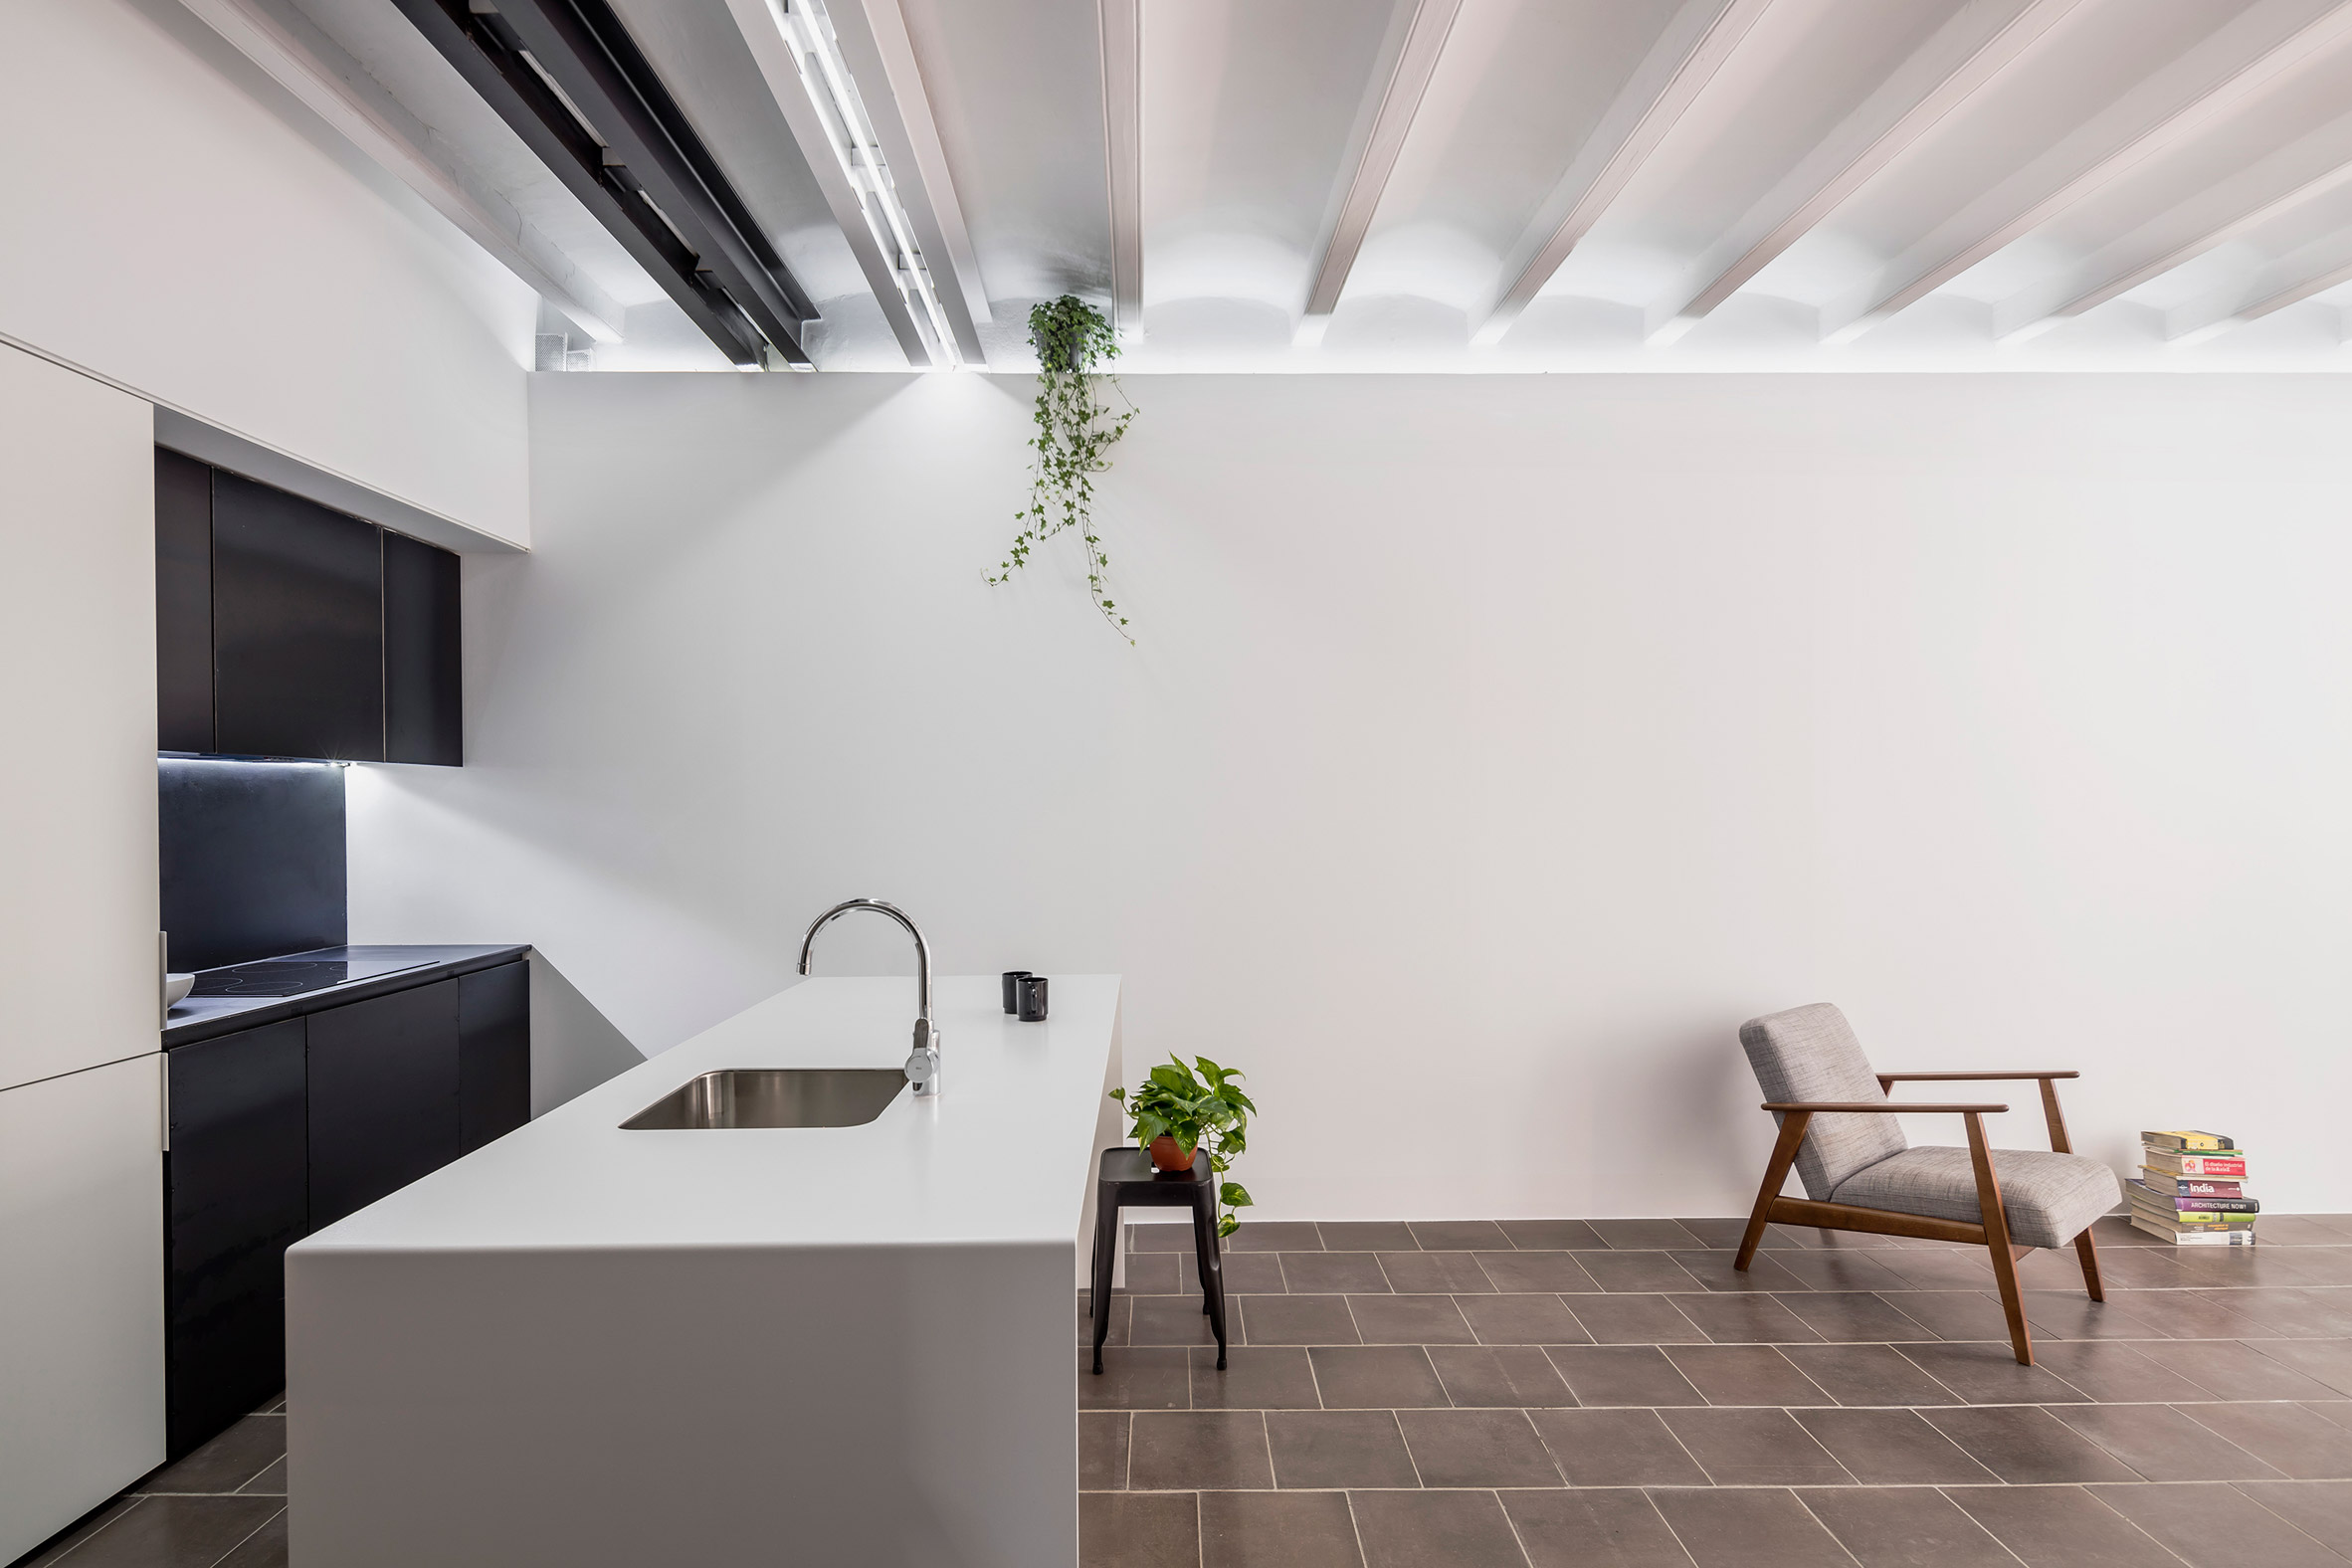 RÄS studio updates Barcelona apartment with monochrome paintwork and textured tiles